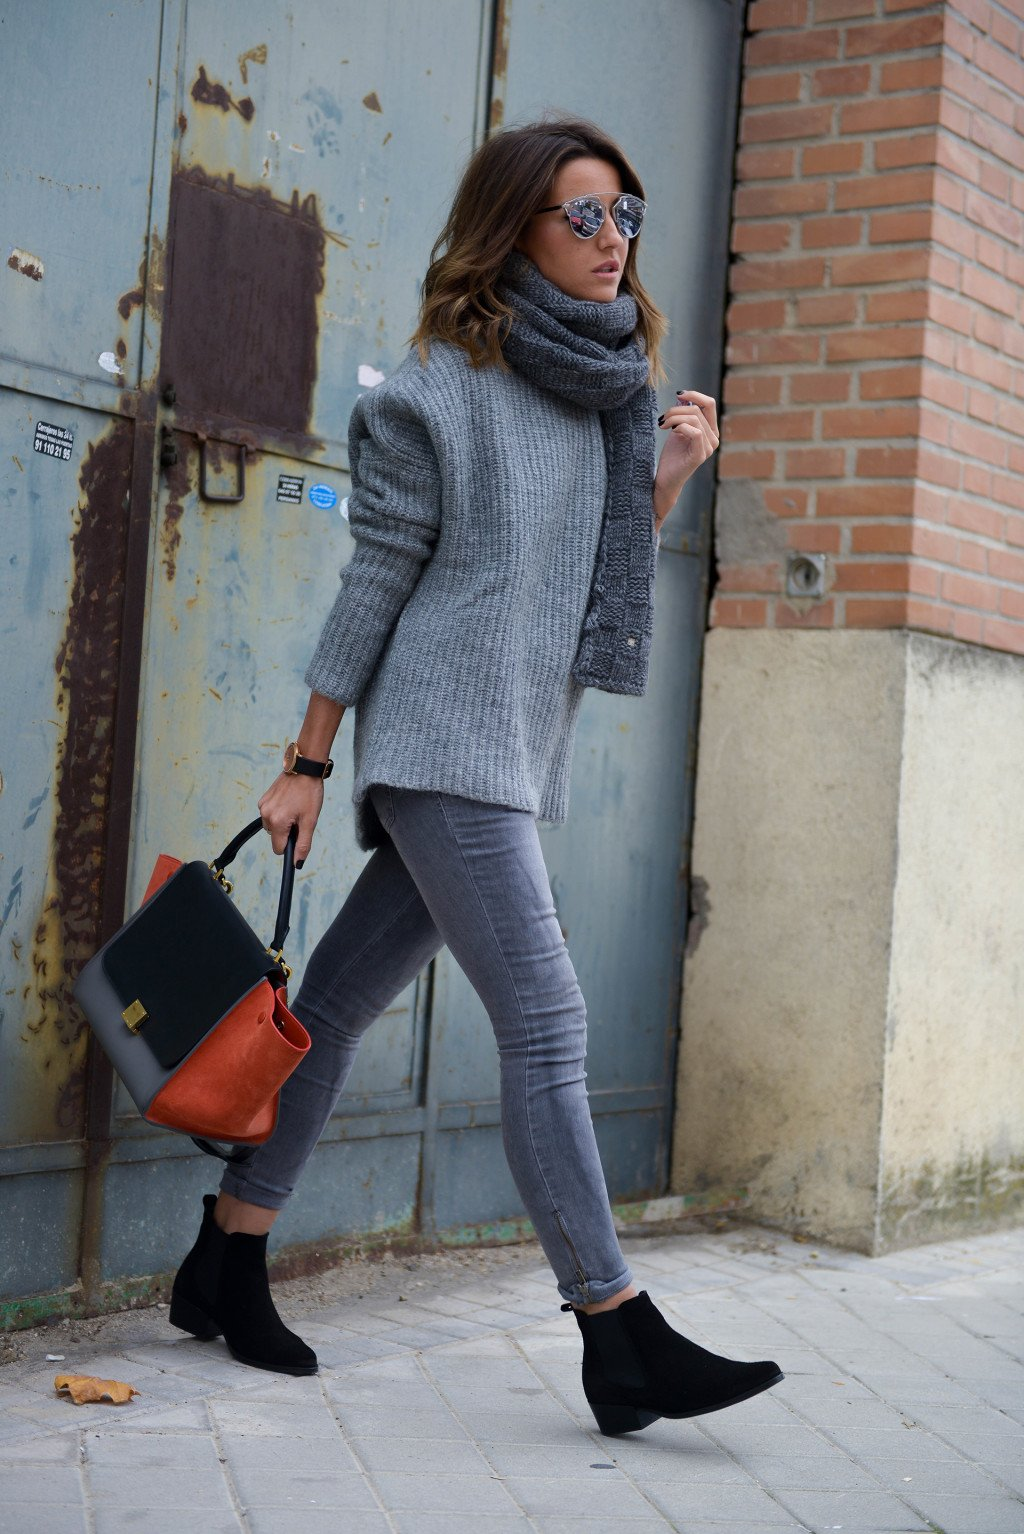 15 Comfortable And Trendy Fall Fashion Combinations